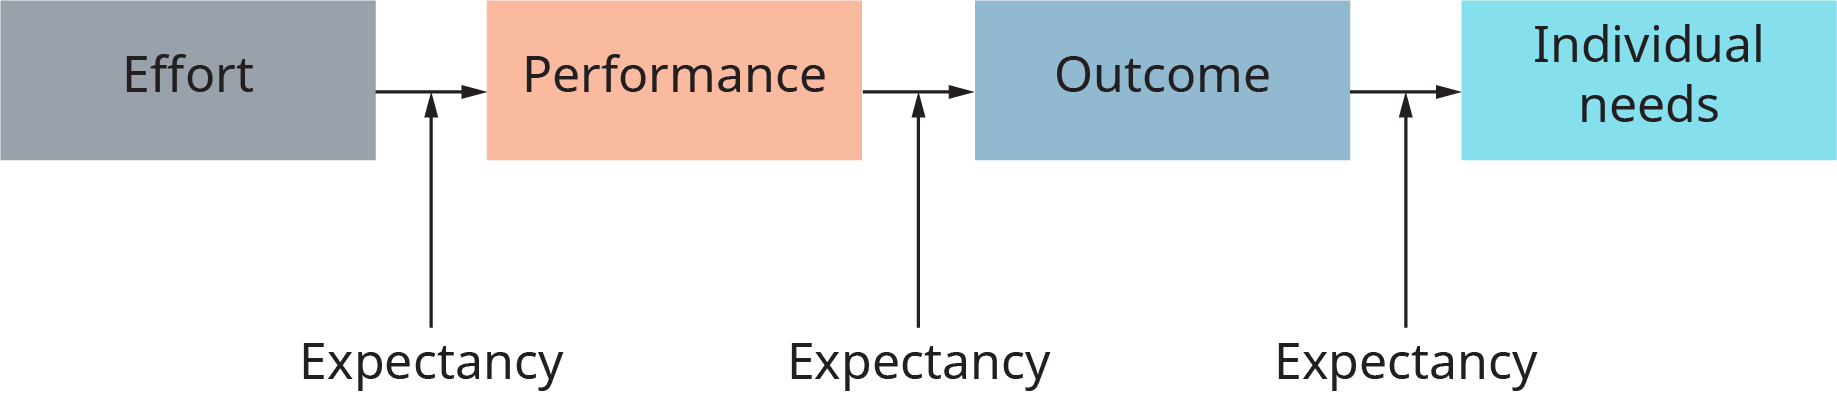 A process is shown as words connected by arrows. The diagram starts with the word effort, and an arrow points to performance. An arrow points from here to the word outcome. An arrow points from here to the words individual needs. Arrows labeled expectancy point to each of the arrows between words in the process.